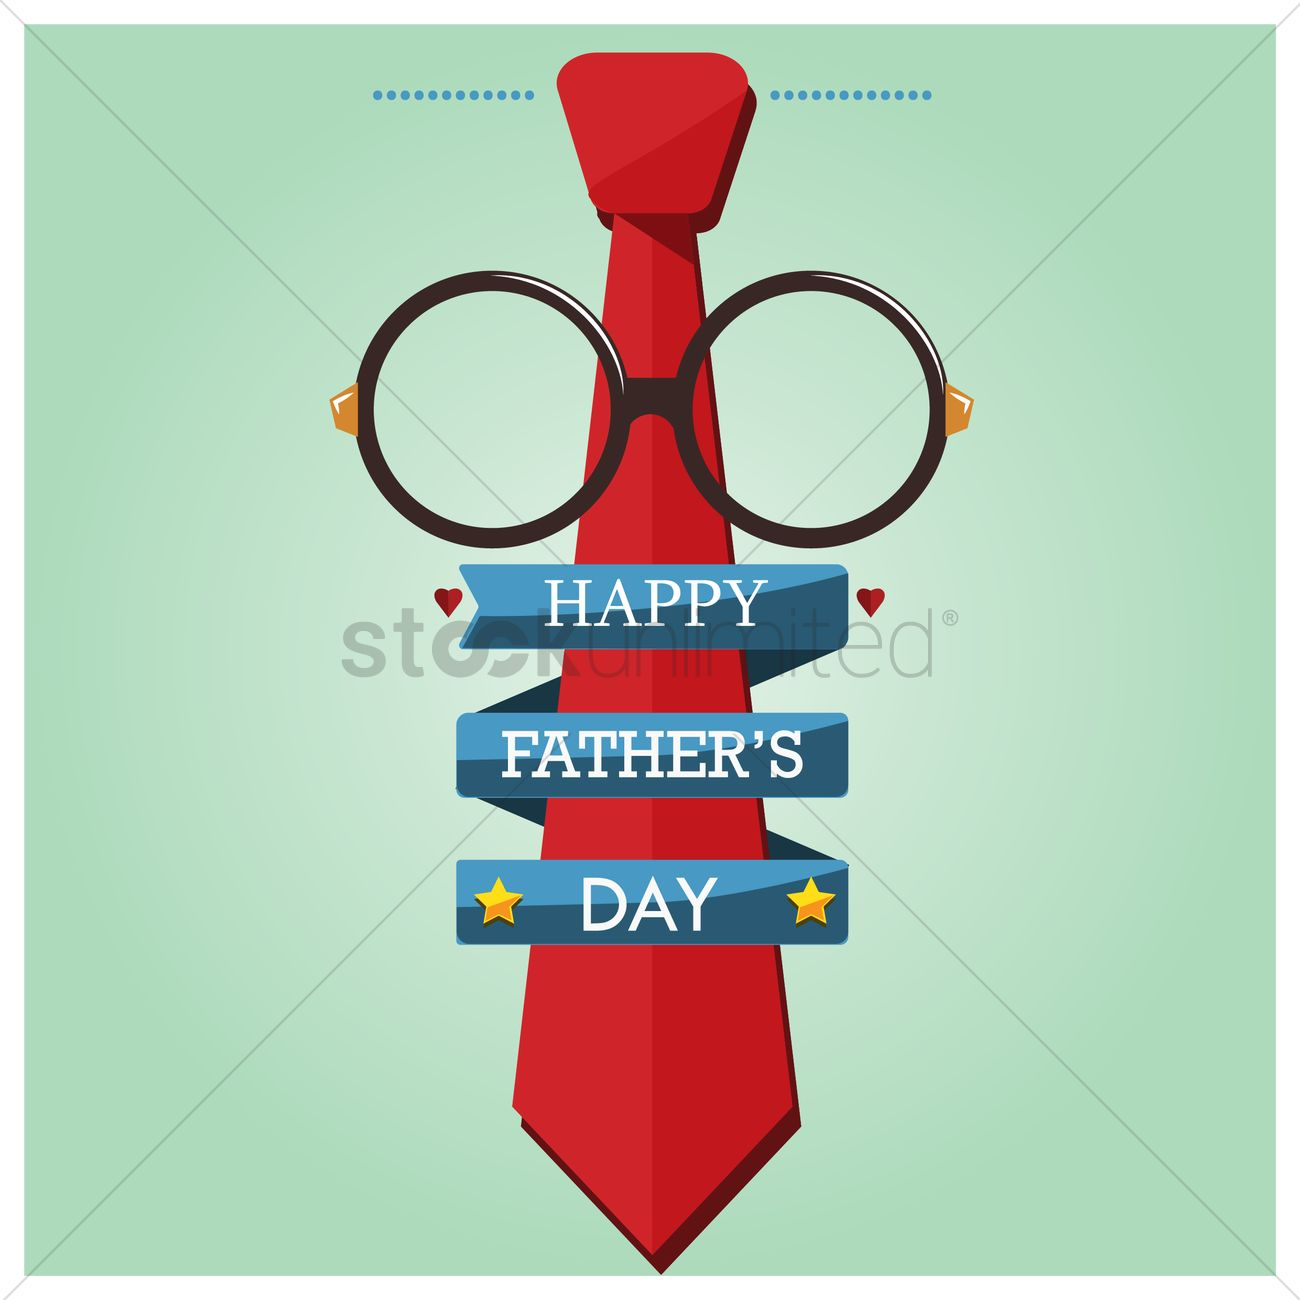 Happy Fathers Day Wallpaper Vector Image 1585477